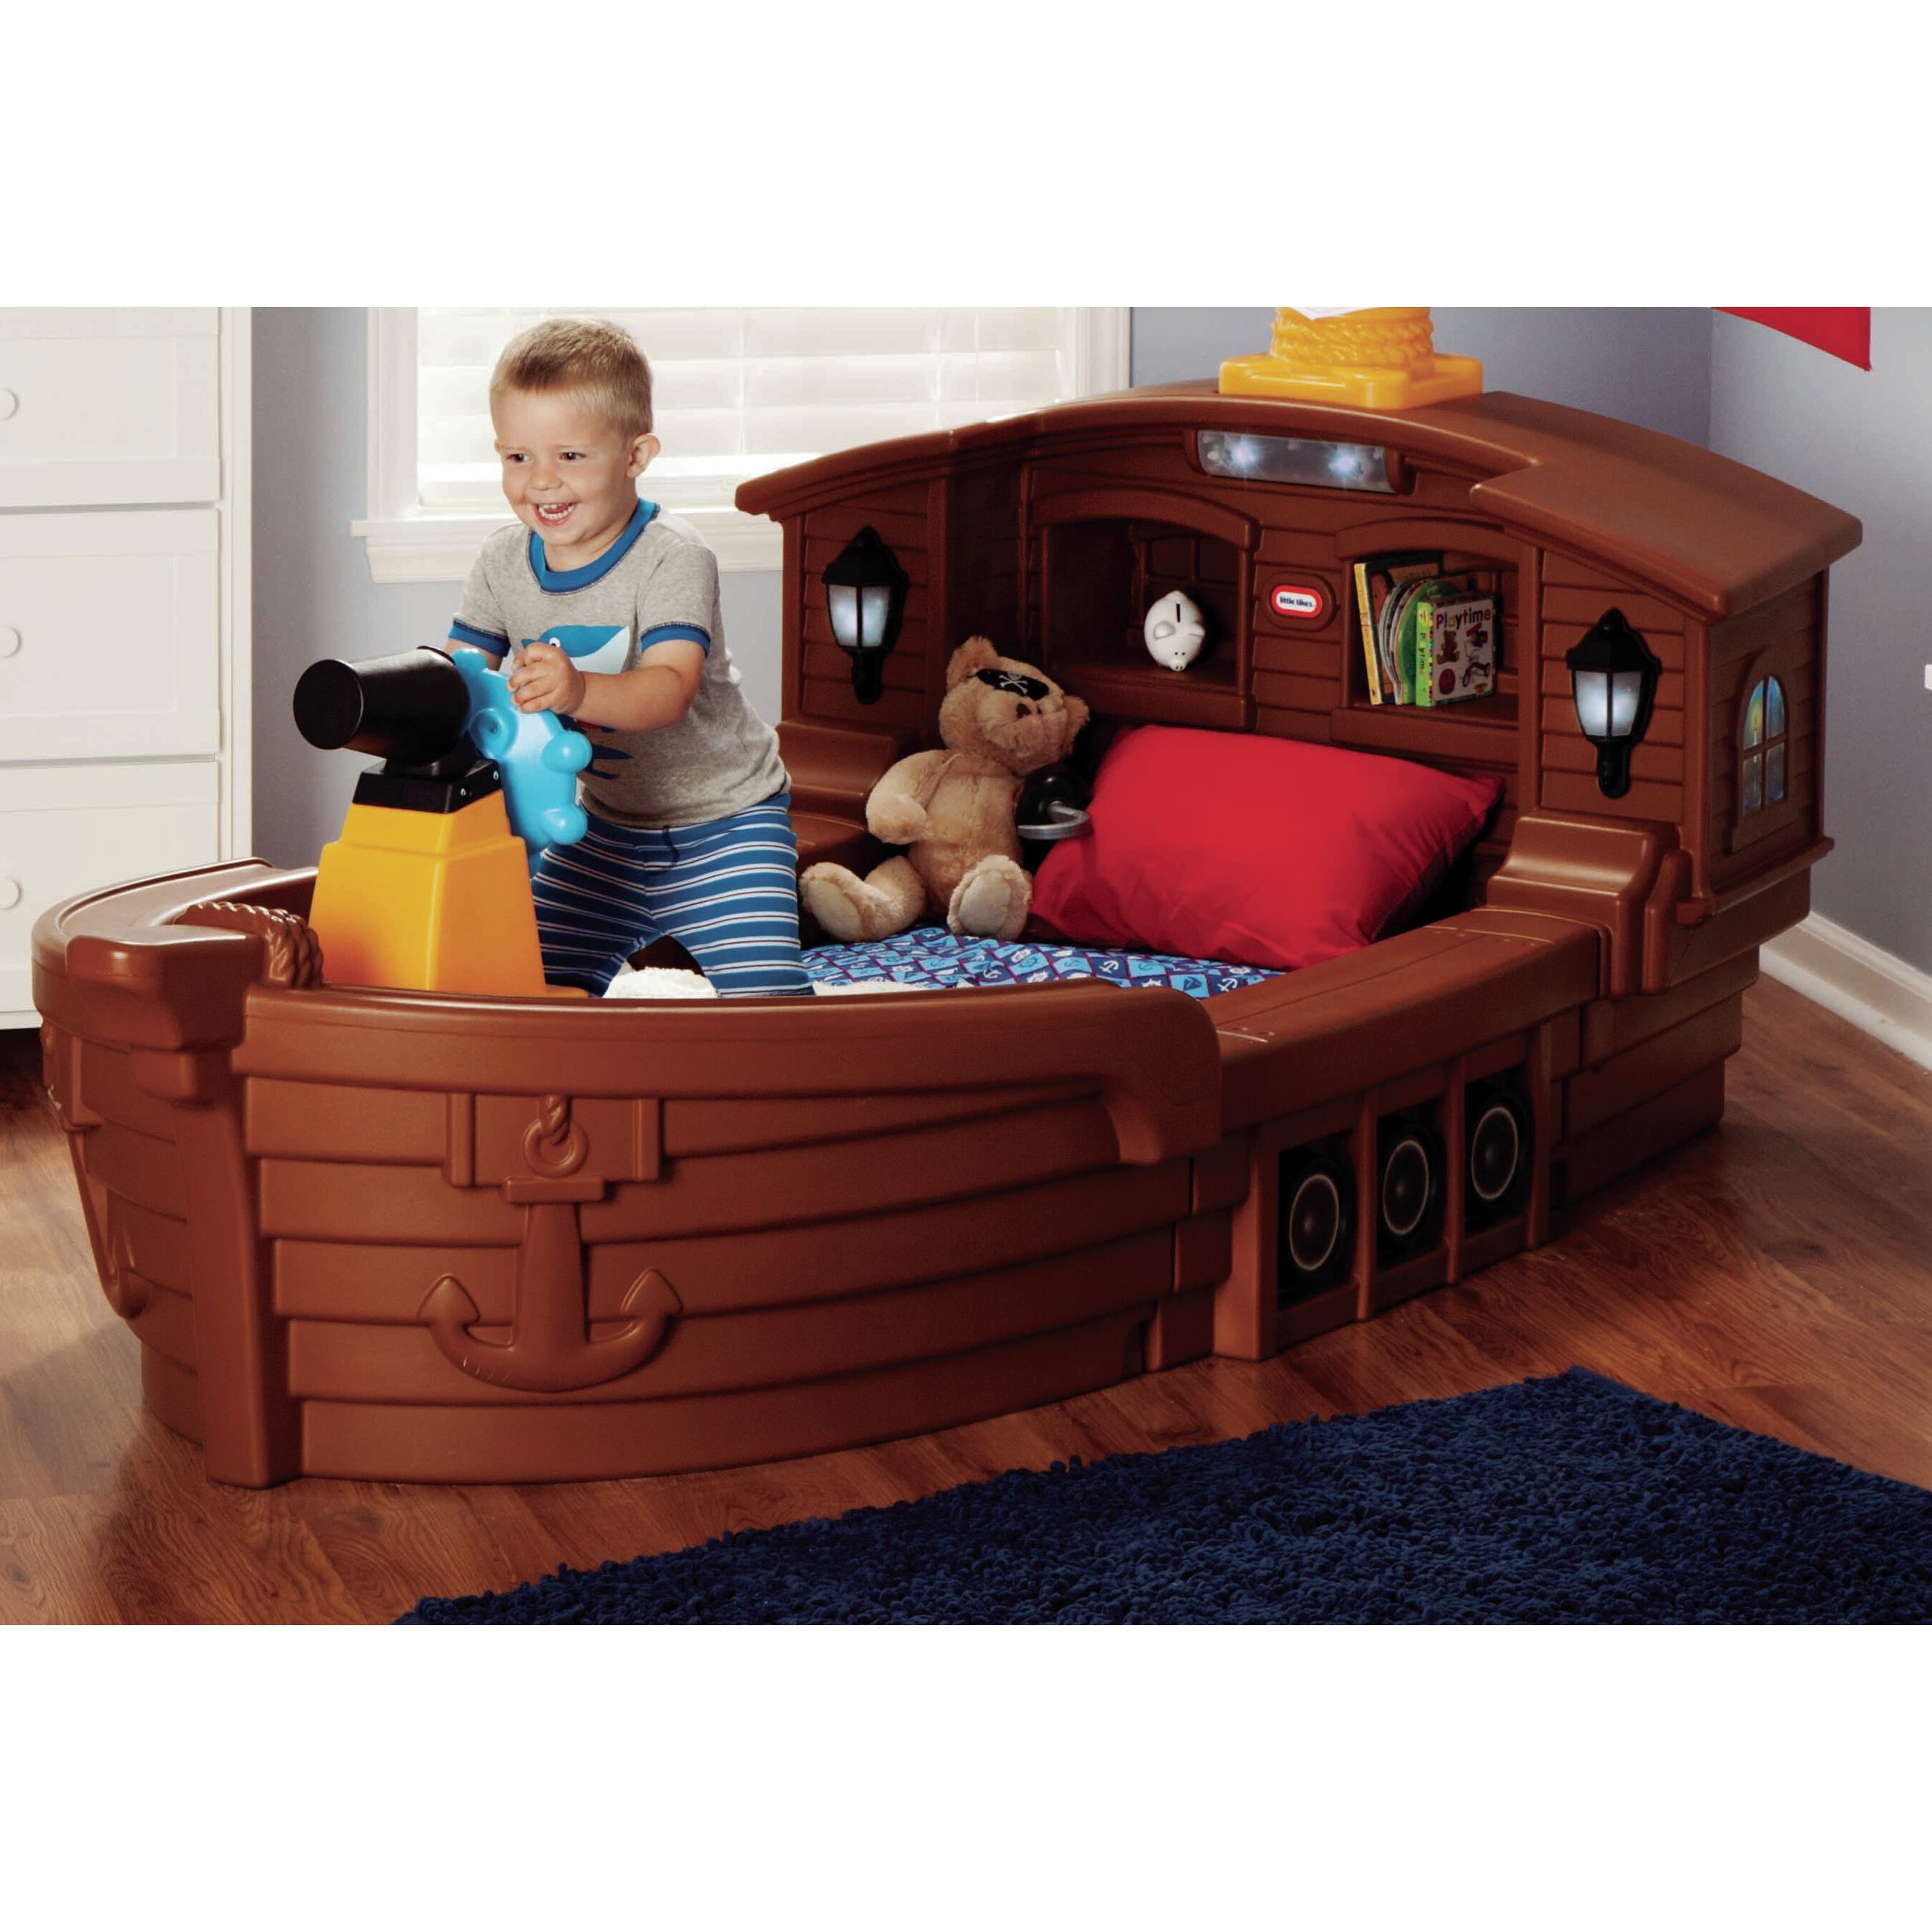 little tikes pirate ship toddler bed instructions